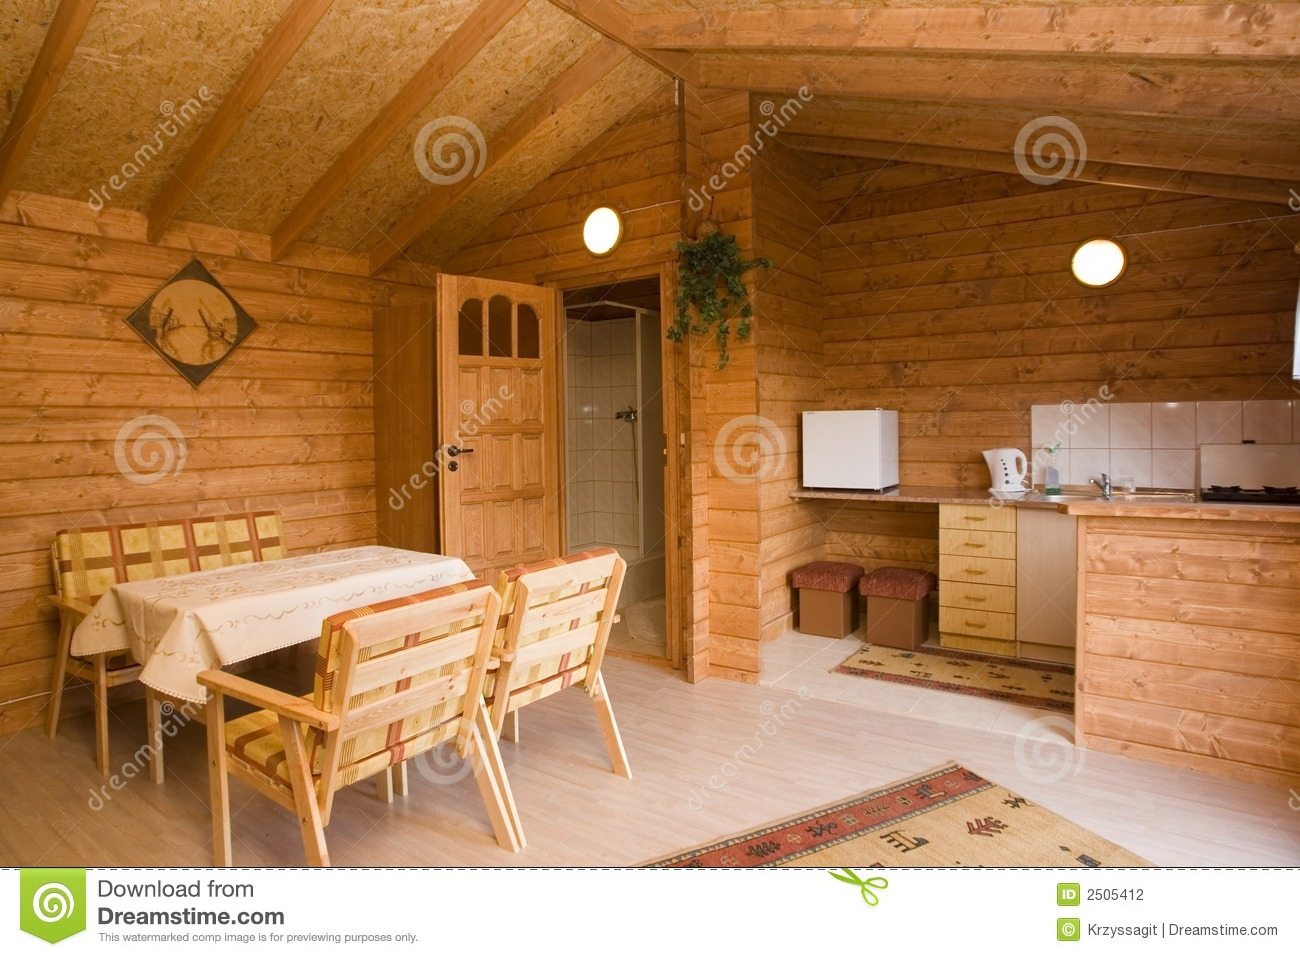 Log Cabin Interior Stock Photography - Image: 2505412